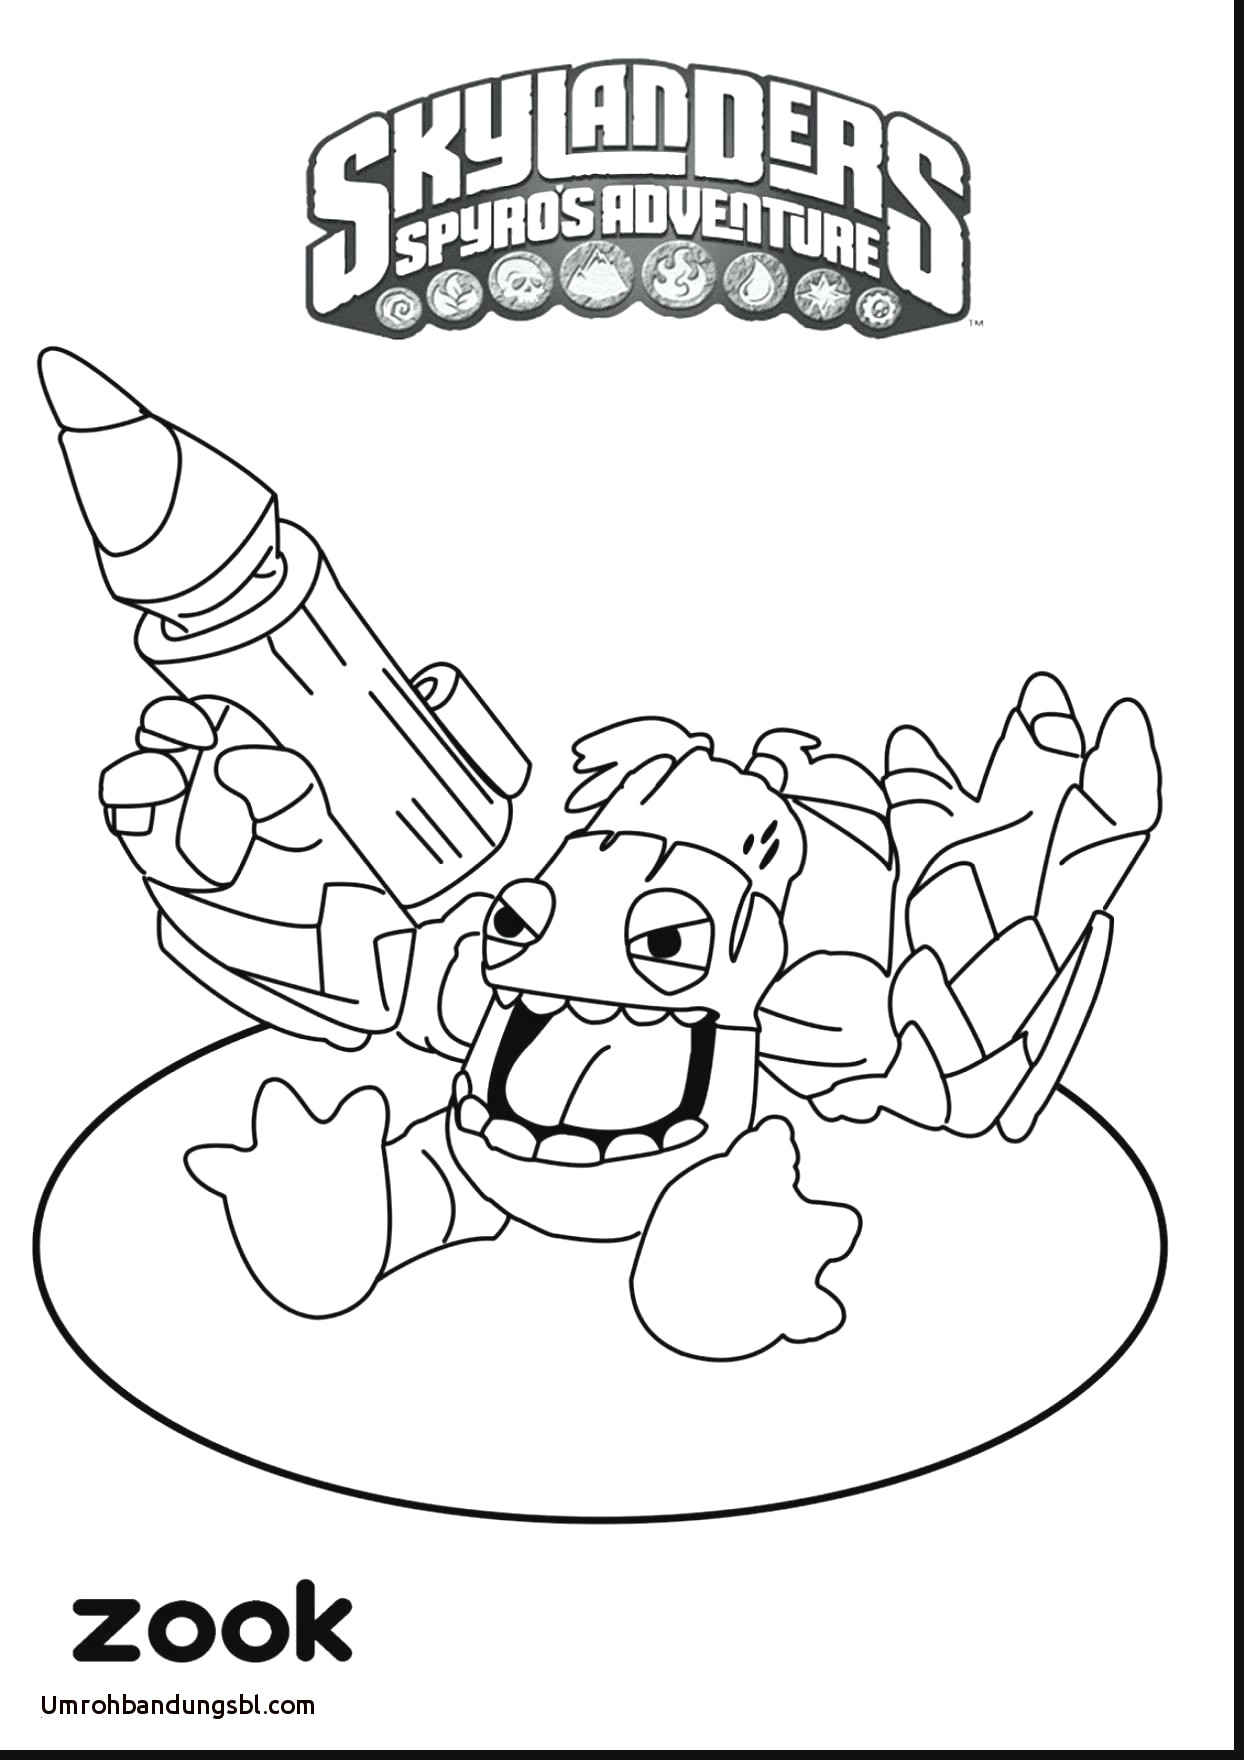 kittens coloring pages Collection-Girl Coloring Pages Fabulous Coloring Pages for Girls Lovely Printable Cds 0d – Fun Time 17-c